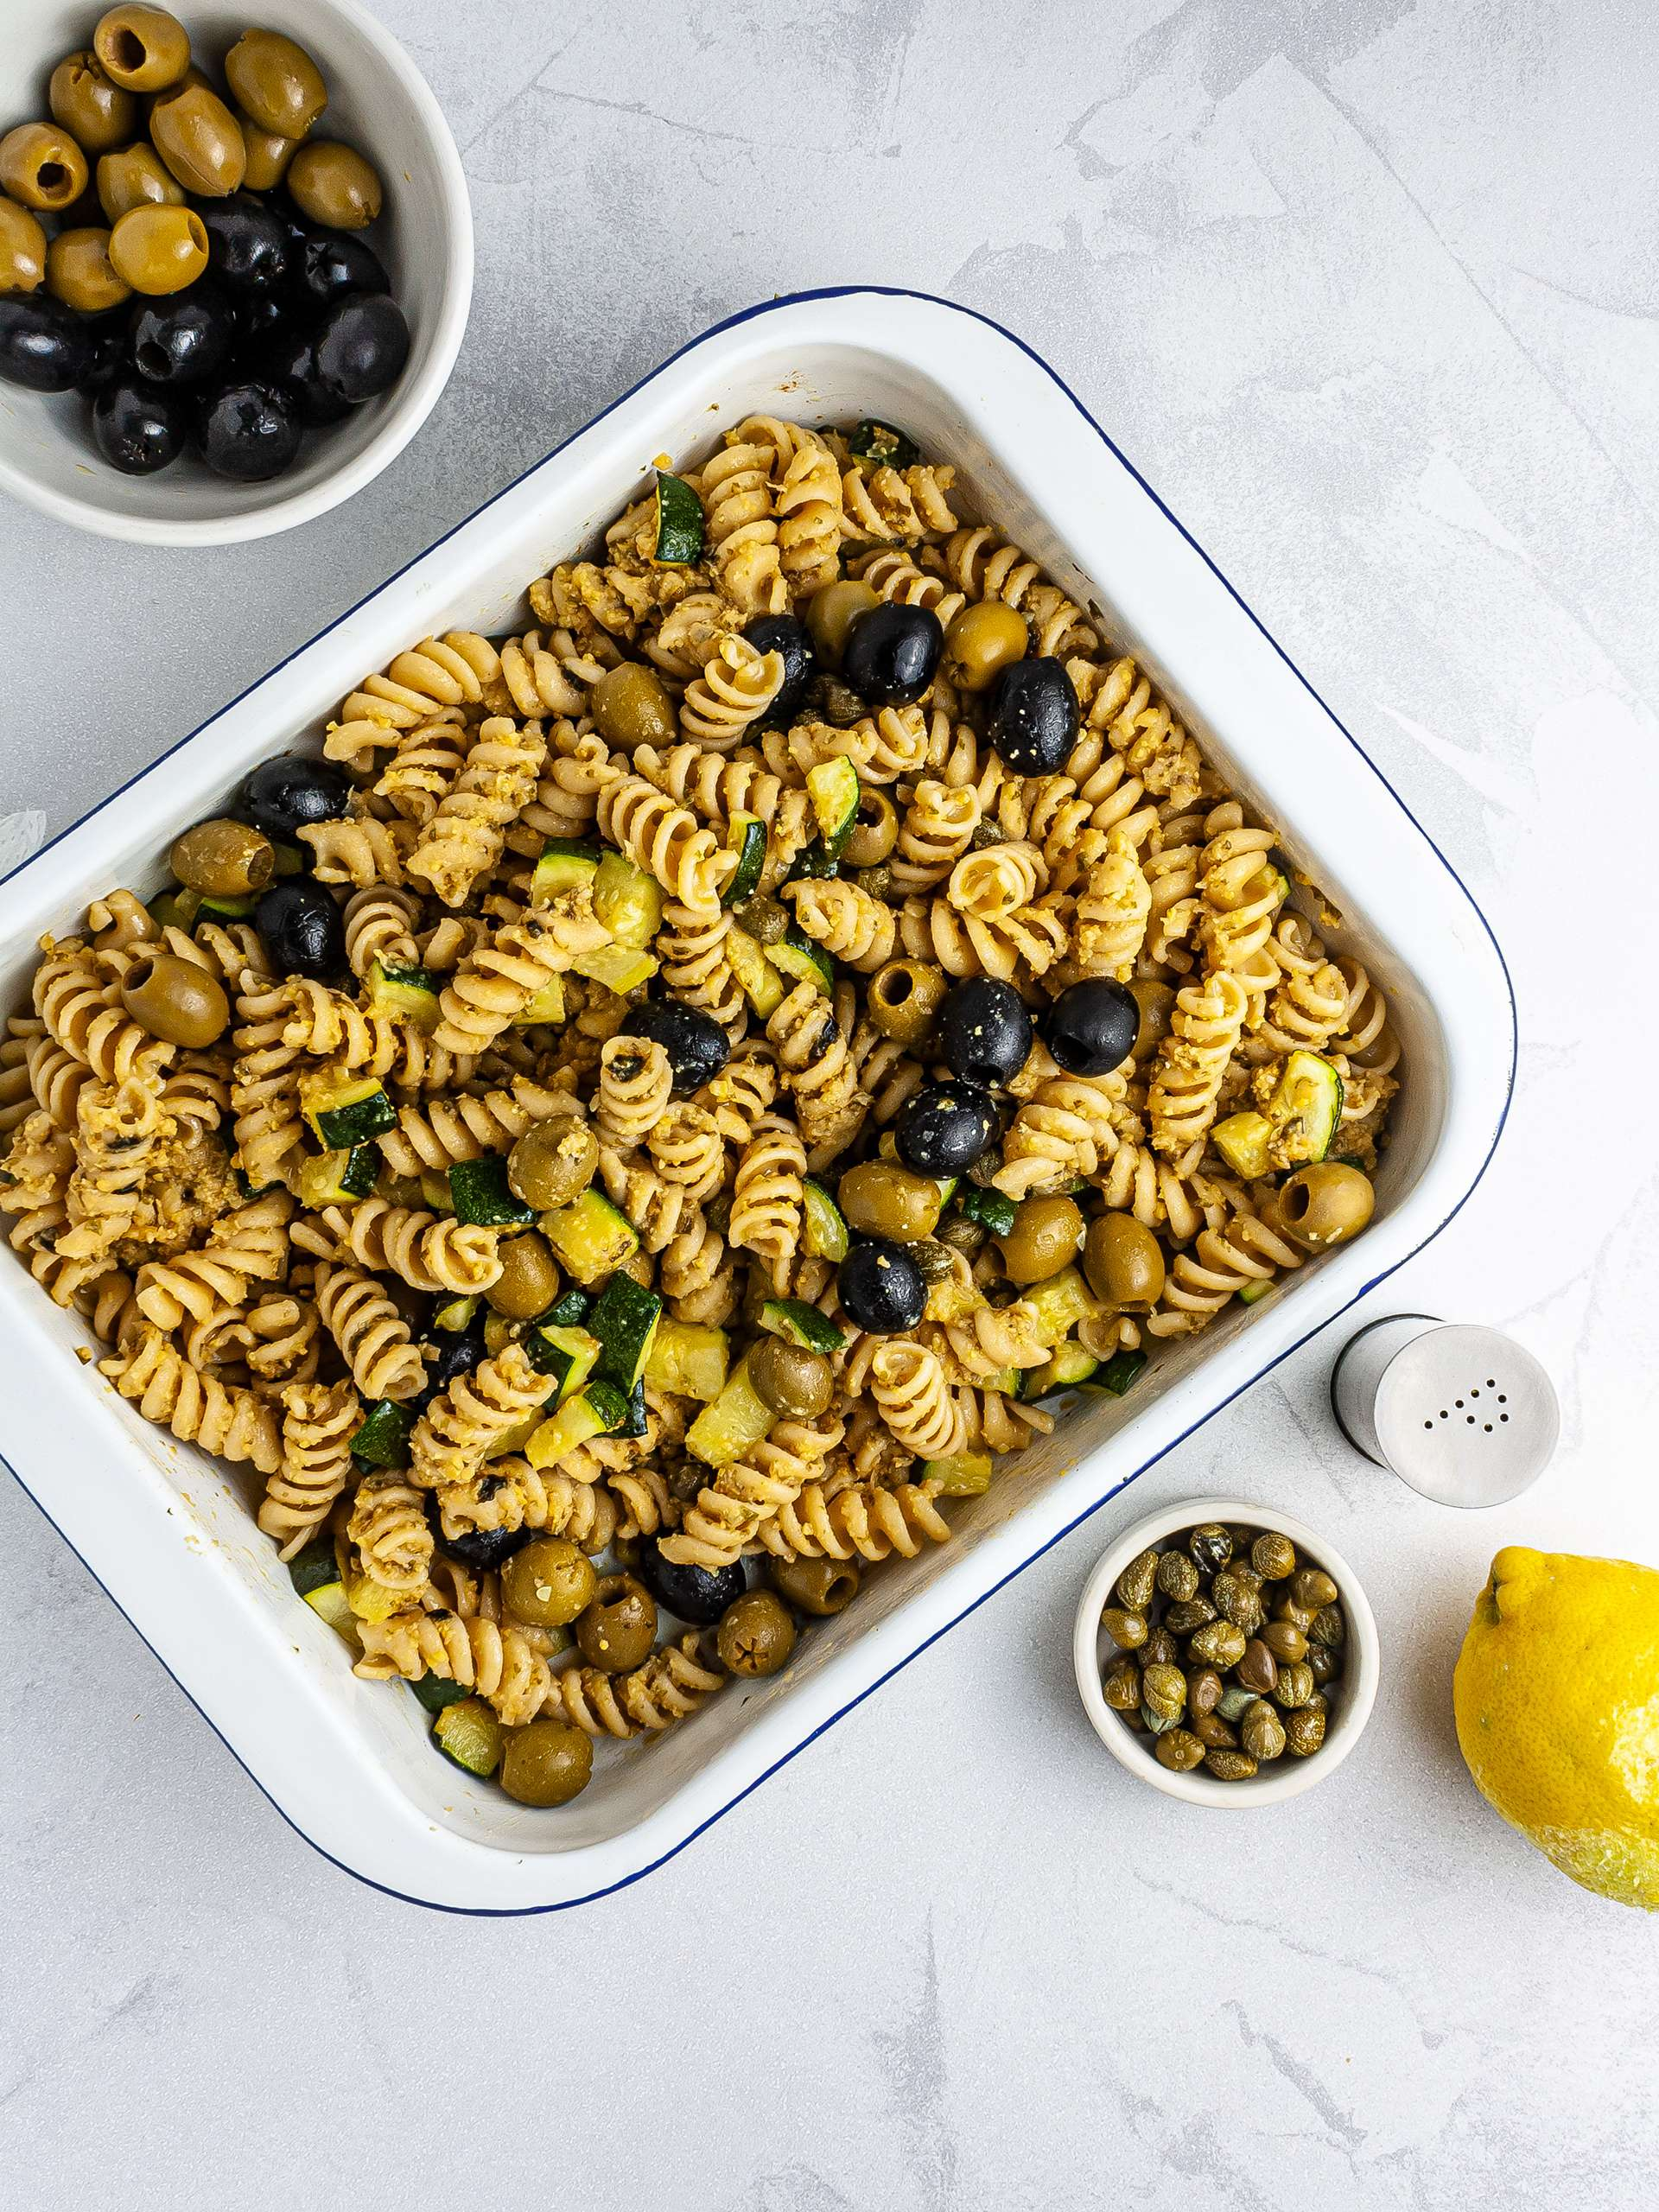 Pasta salad with olives, capers and lemon zest